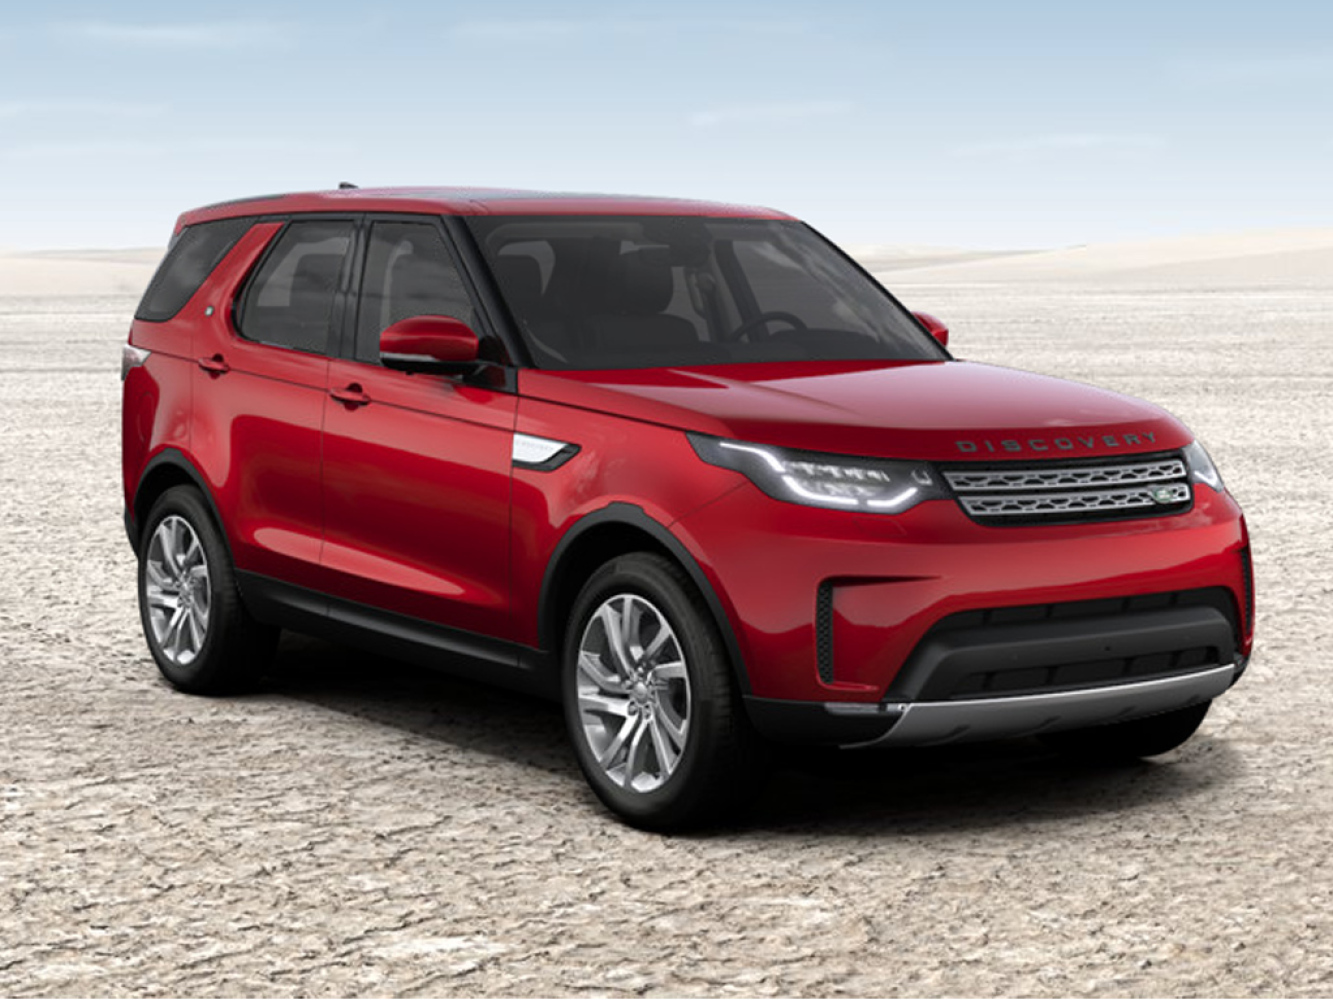 New Land Rover Discovery 2 0 Si4 Hse 5dr Auto Petrol